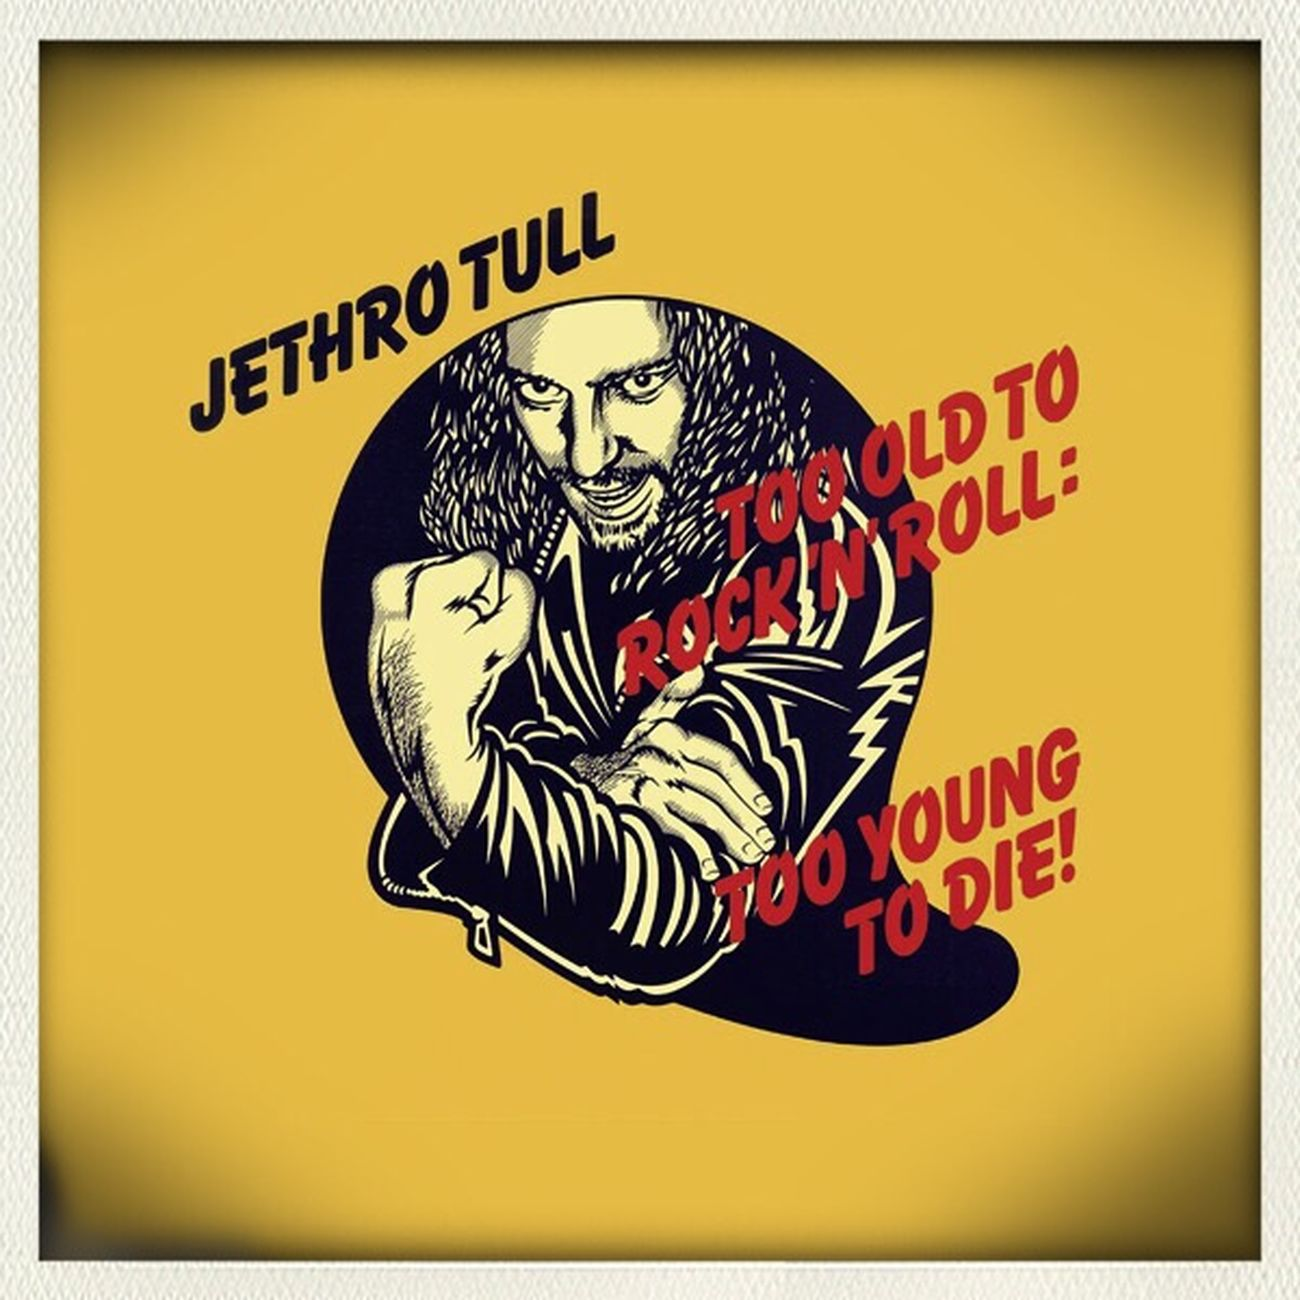 Good music Check This Out Enjoying Life Musica Jethro Tull musica de los 70 rock progresivo,screenshot